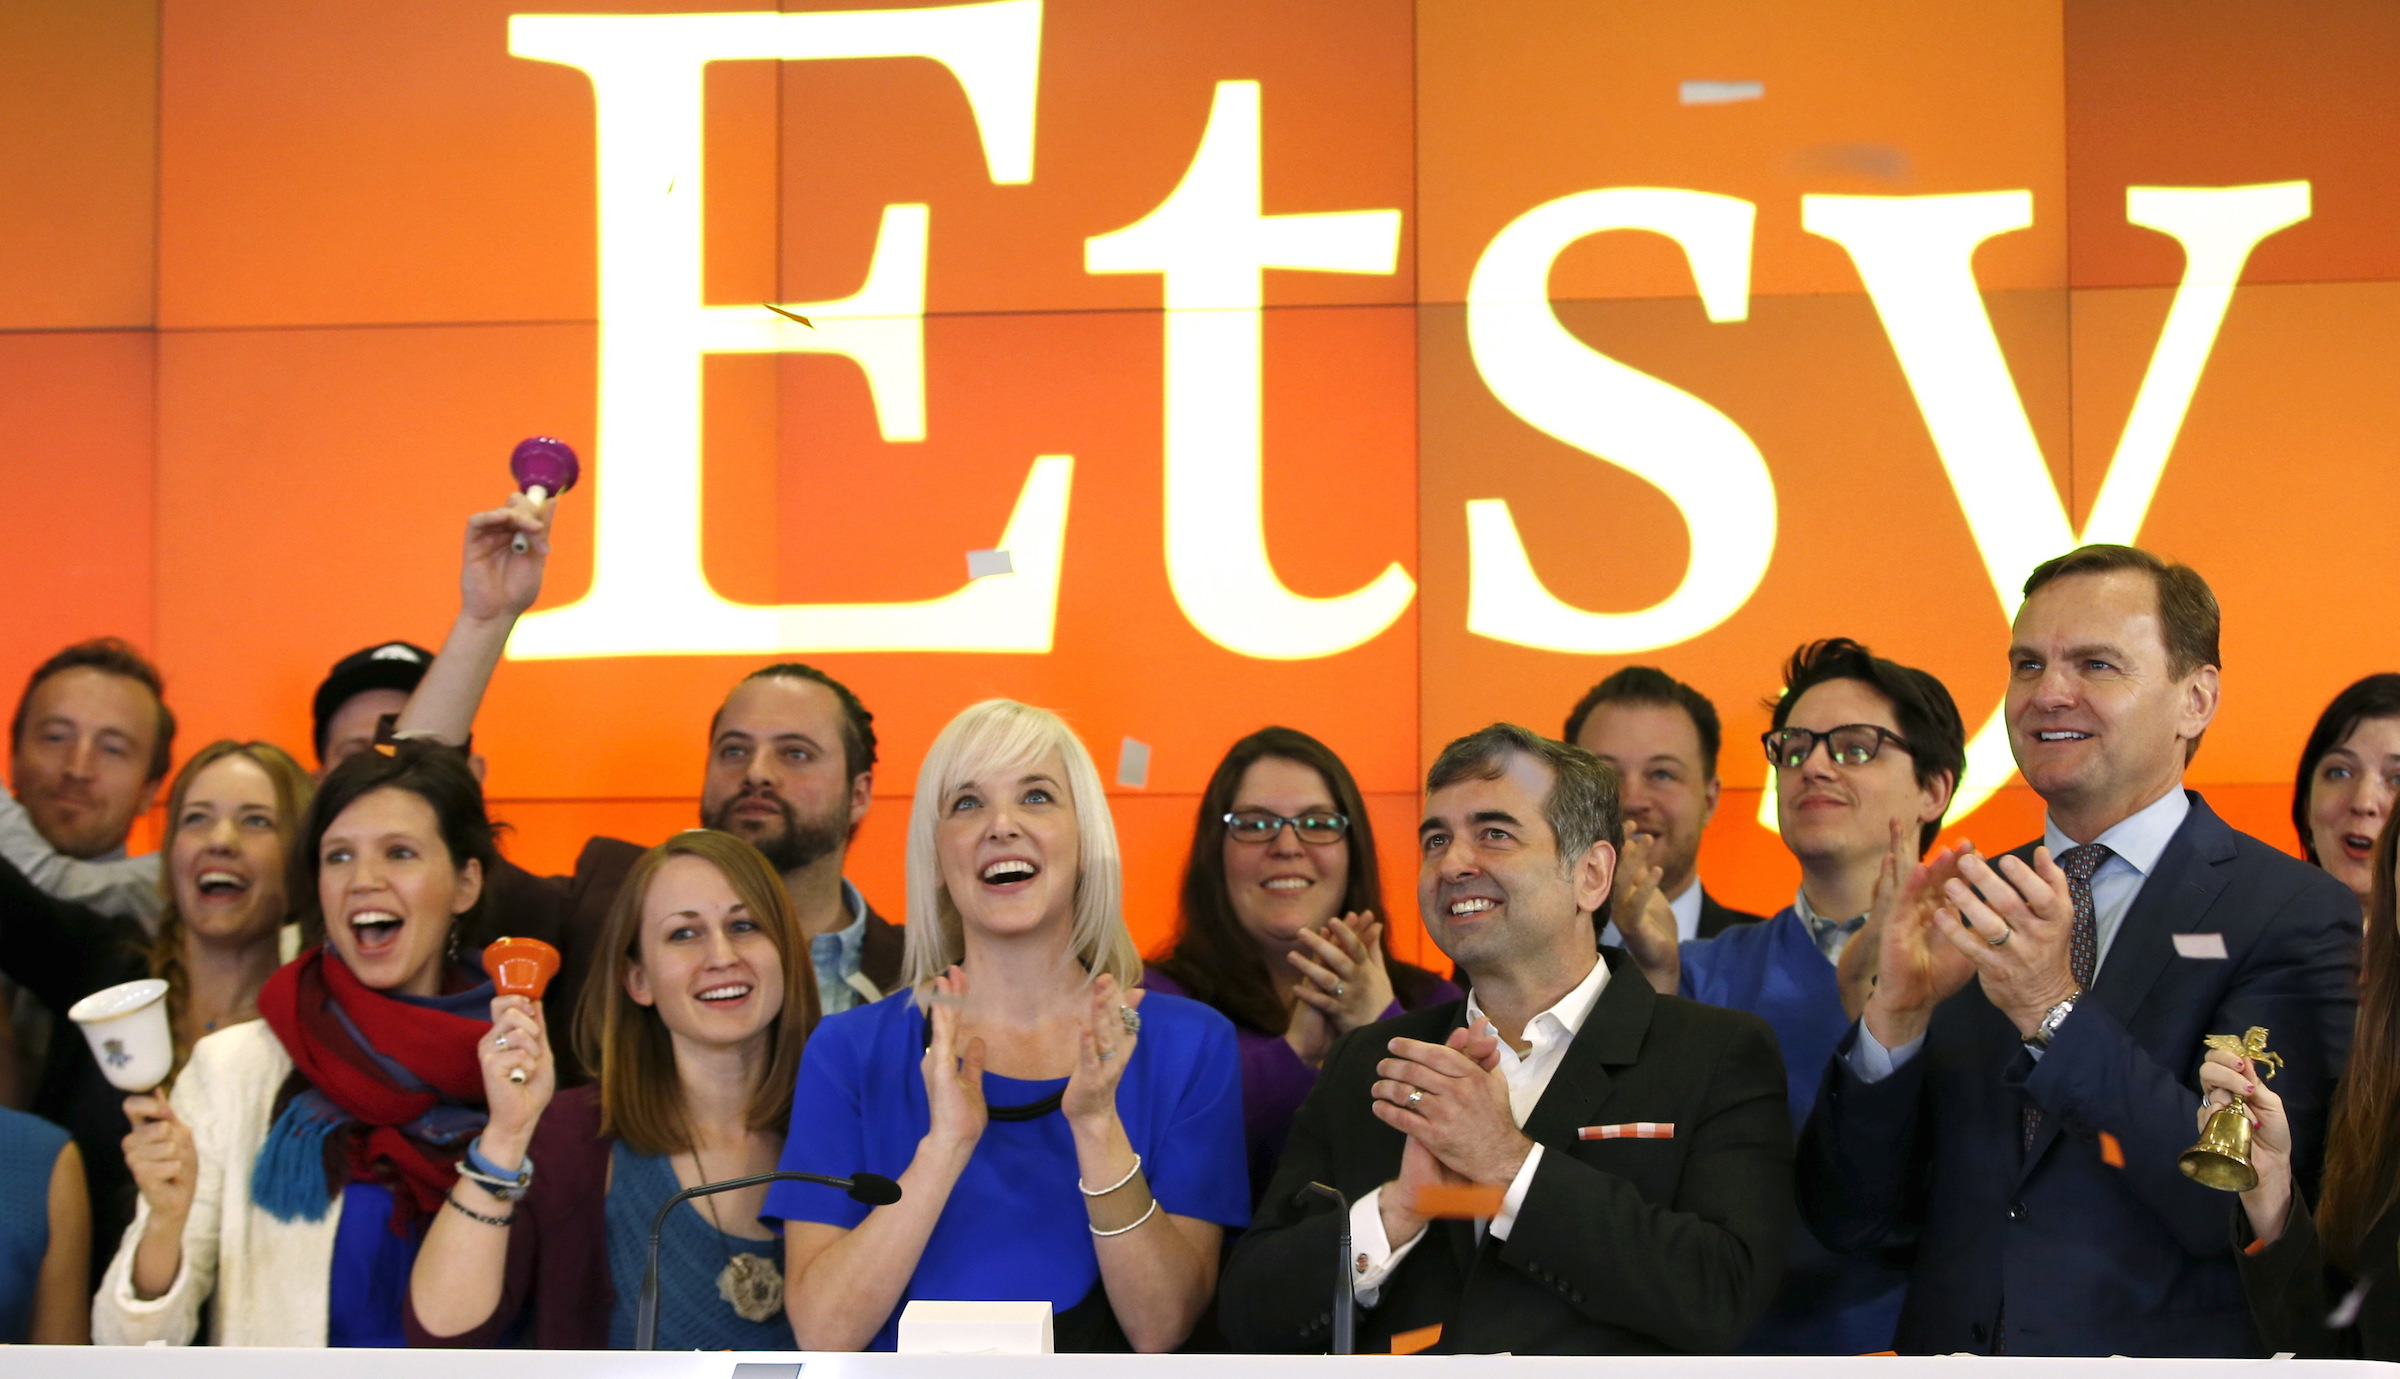 Etsy Inc's Chief Executive Officer Chad Dickerson (2nd from R) and Chief Financial Officer Kristina Salen (C) stand with Etsy Employees and Nasdaq Executive Vice President Bruce Aust (R) as they celebrate Etsy's initial public offering (IPO) at the Nasdaq market site in New York April 16, 2015. Etsy's initial public offering has been priced at $16 per share, a market source told Reuters, valuing the online seller of handmade goods and craft supplies at about $1.78 billion.  REUTERS/Mike Segar - RTR4XLTC